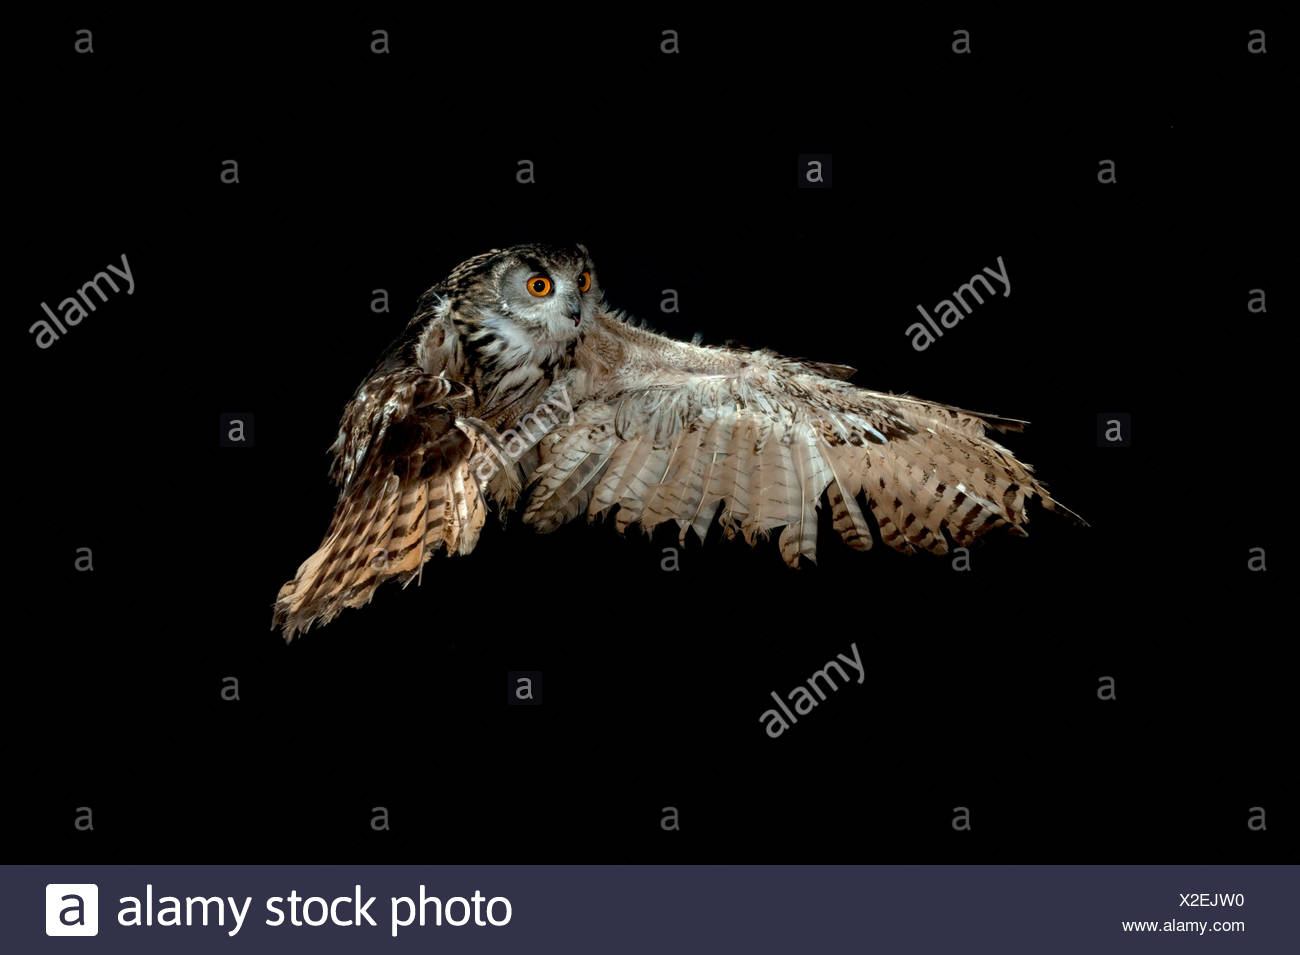 European Eagle Owl Bubo bubo KENT UK flying taking off high speed photographic technique - Stock Image